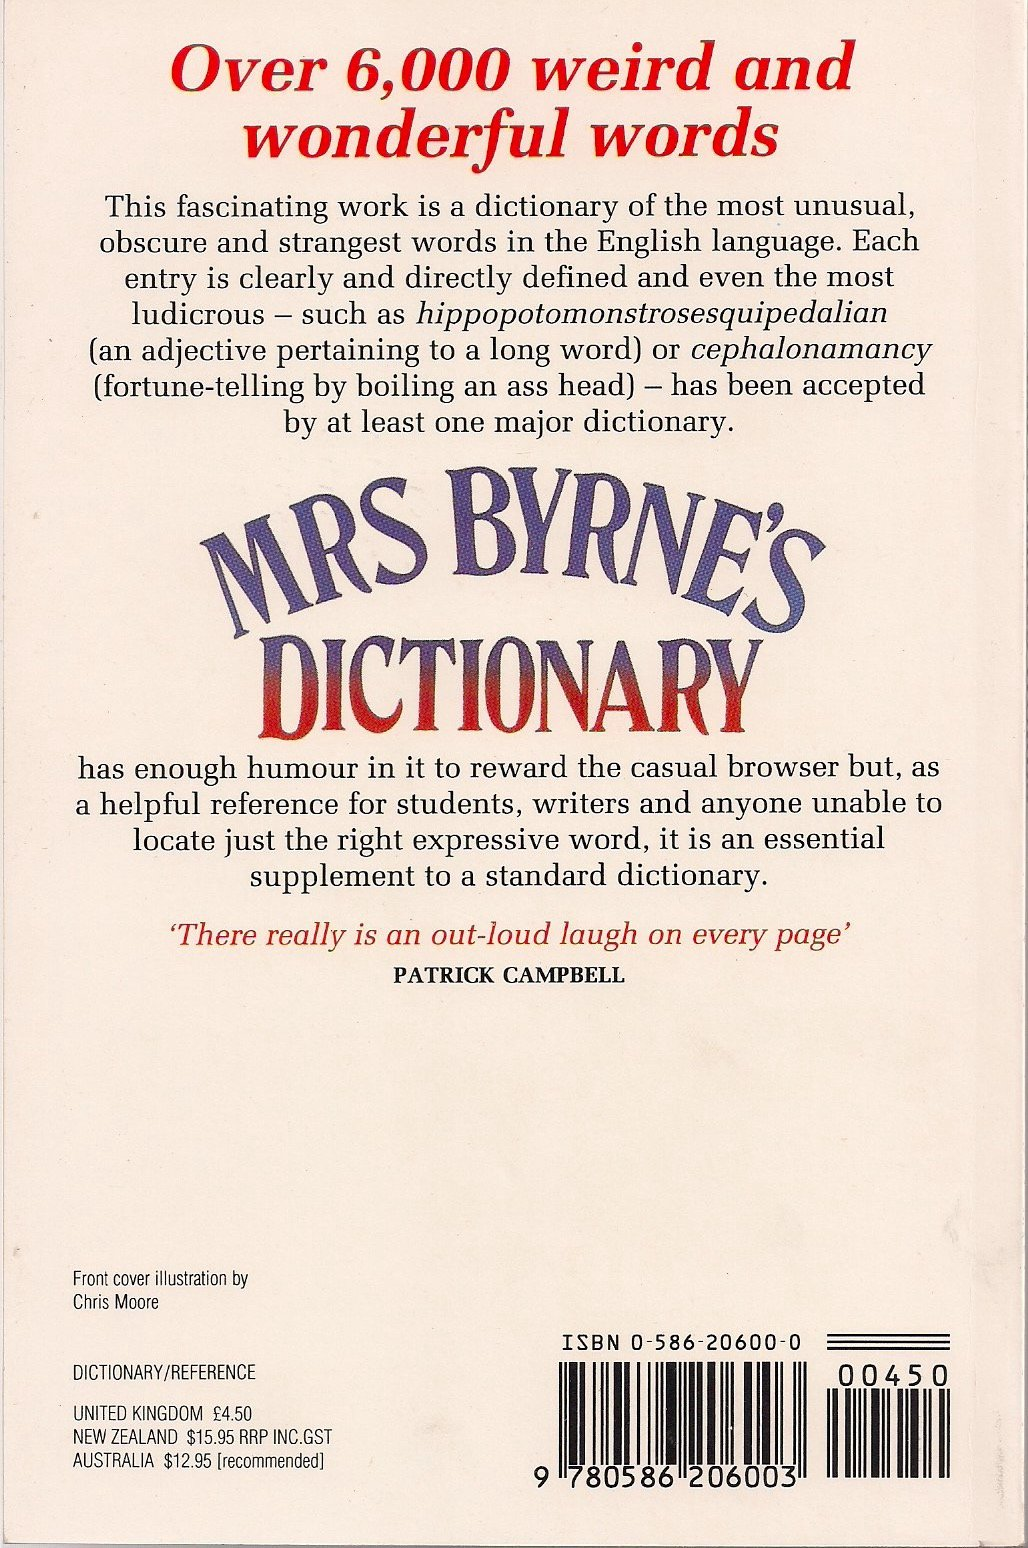 Mrs. Byrne's Dictionary of Unusual, Obscure and Preposterous Words:  Amazon.co.uk: Josefa Heifetz Byrne: 9780586206003: Books